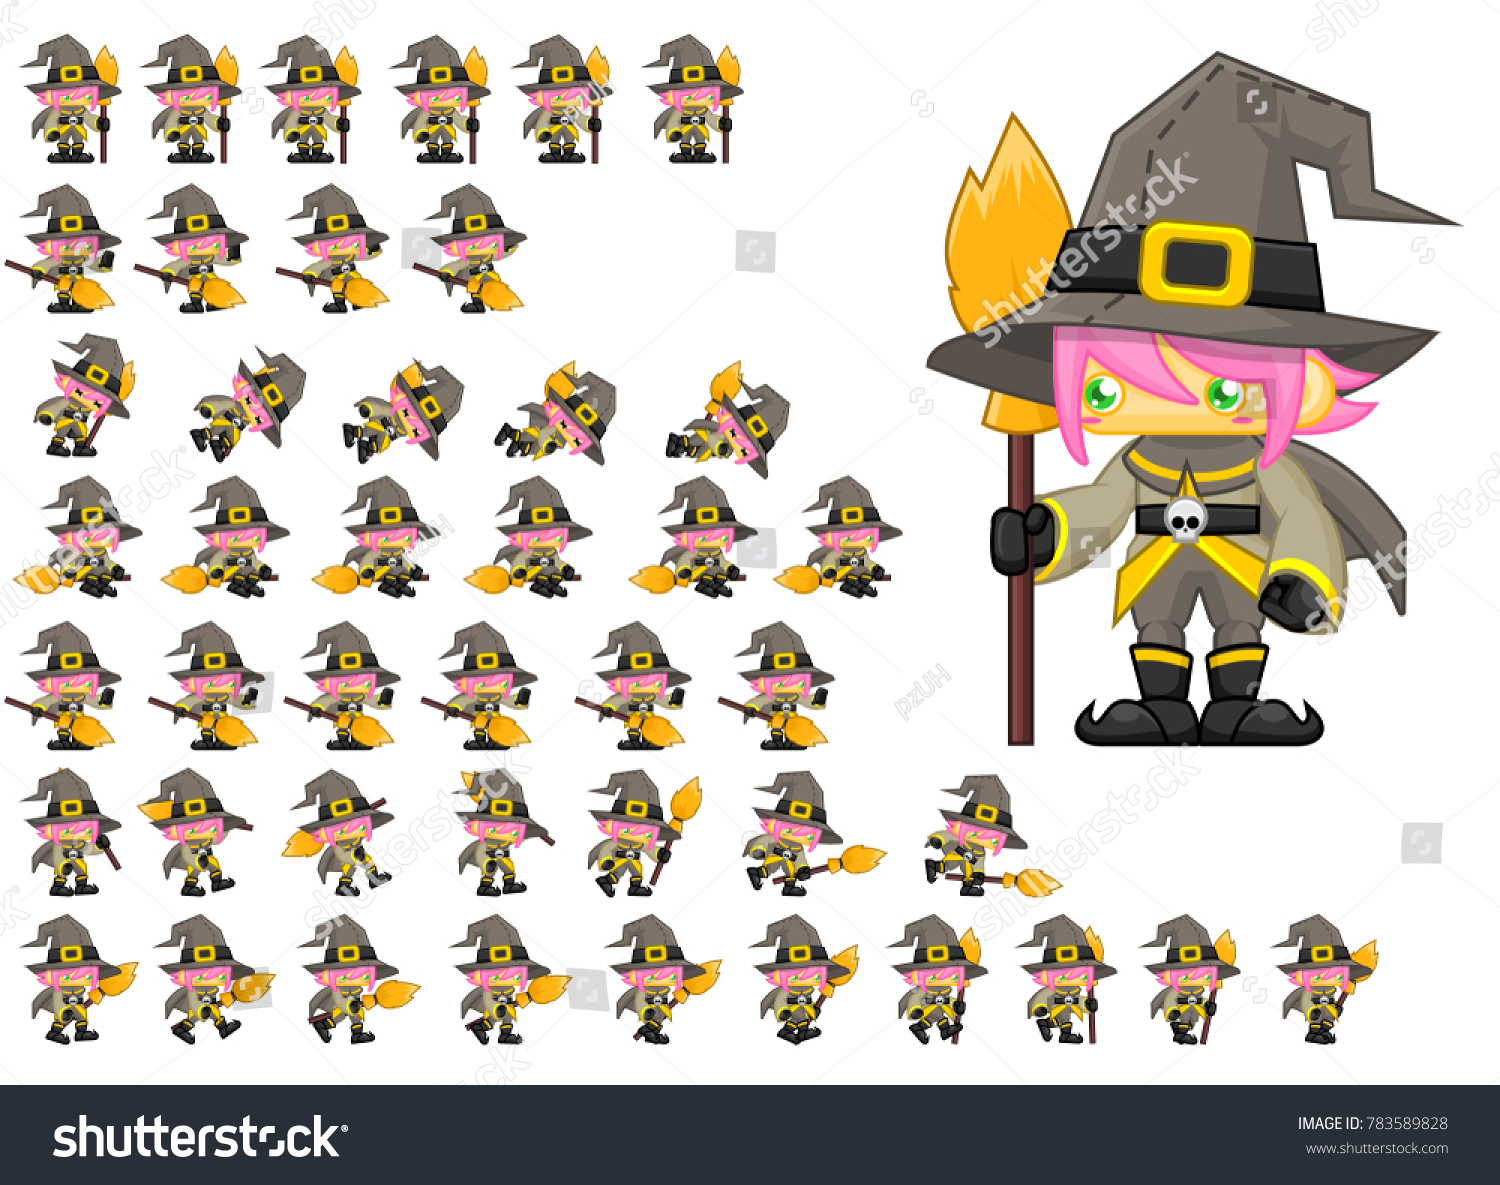 animated cute witch girl halloween video stock vector (royalty free